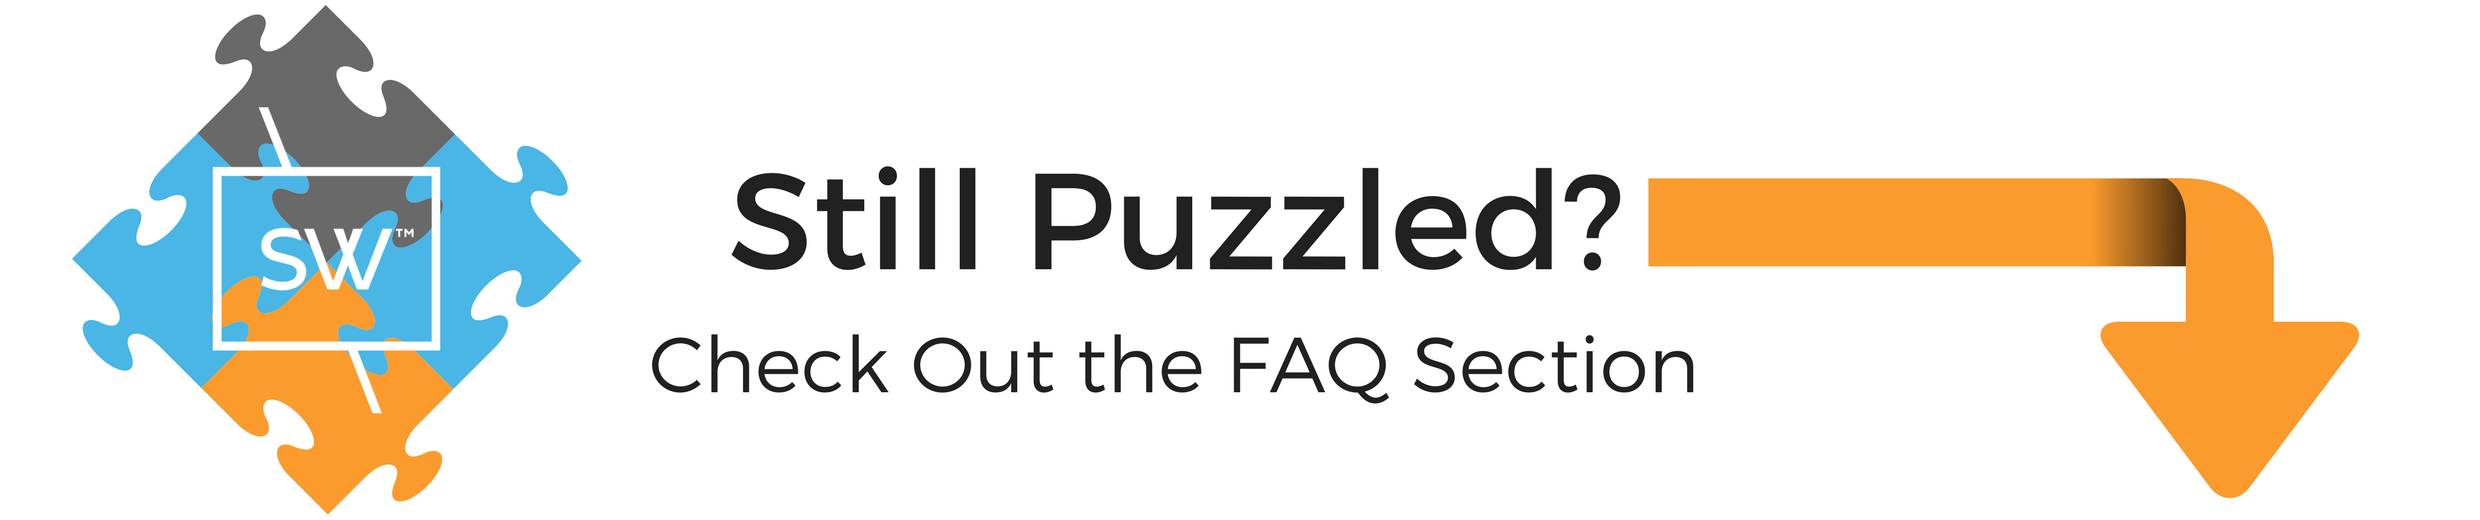 still puzzled? check out the faq section below.